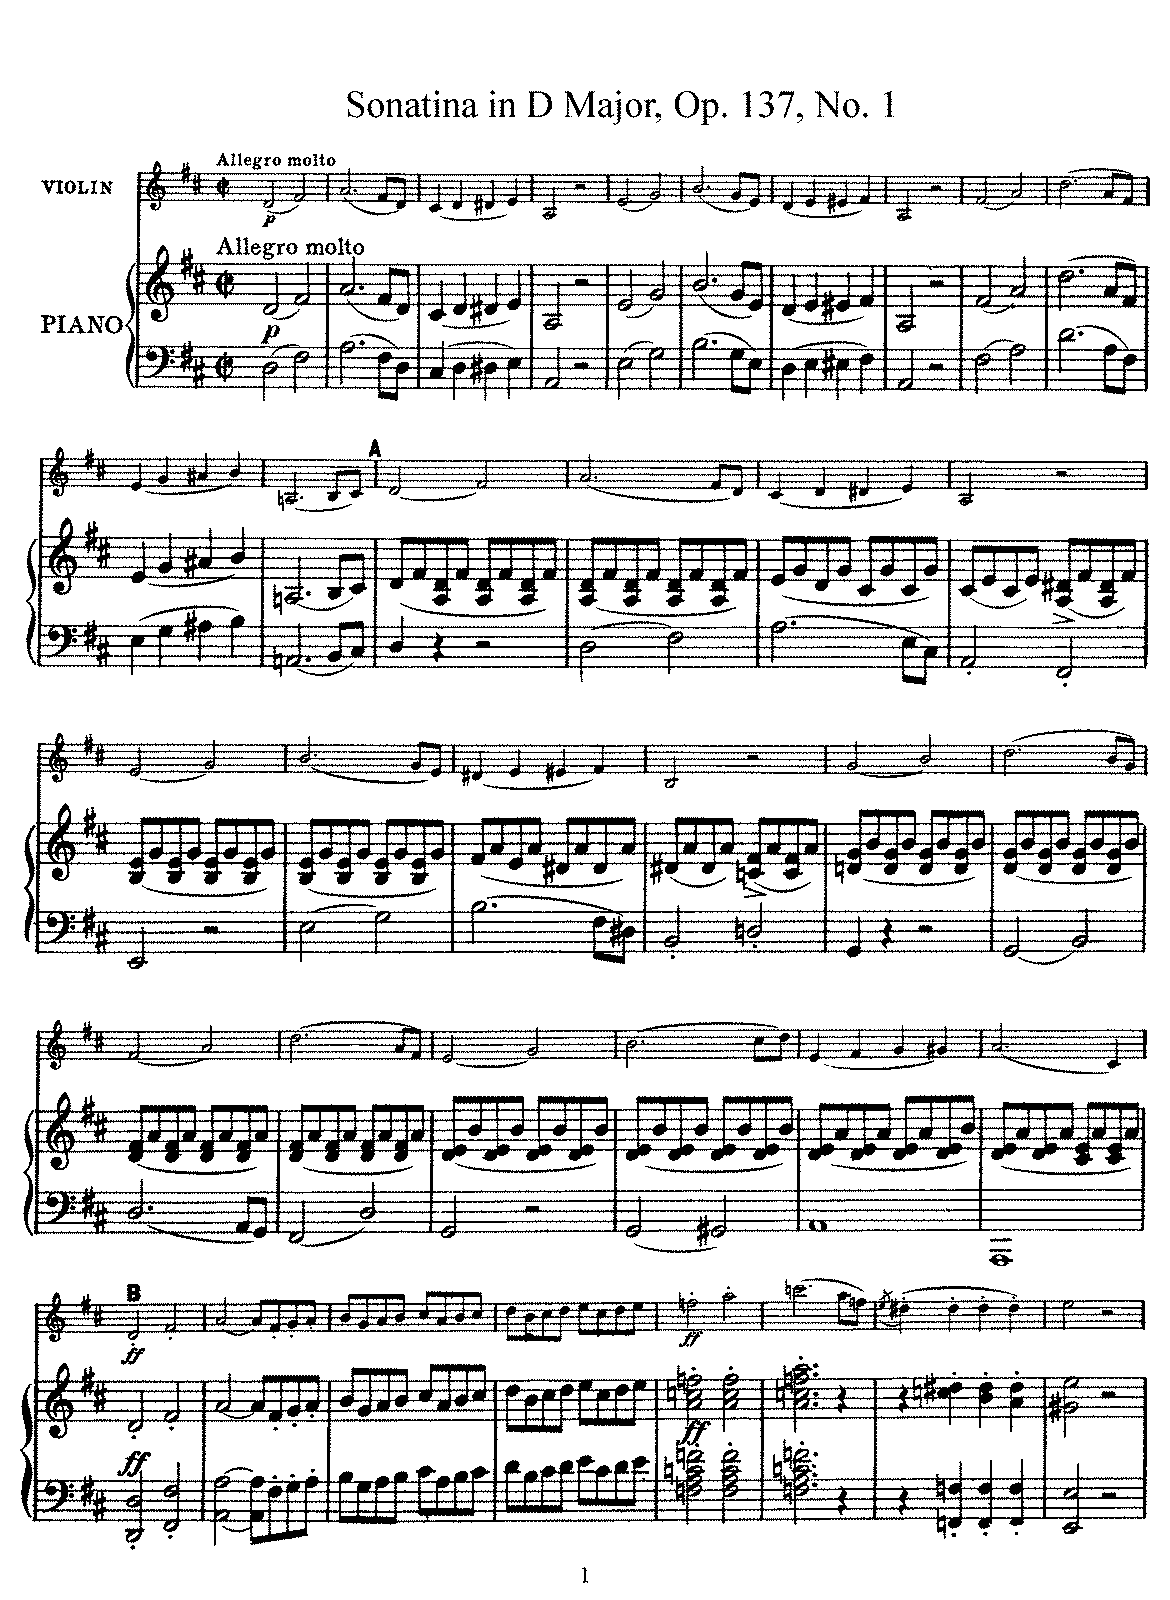 Schubert - D.384 - Violin Sonatina in D Major (Op.137 No.1).pdf